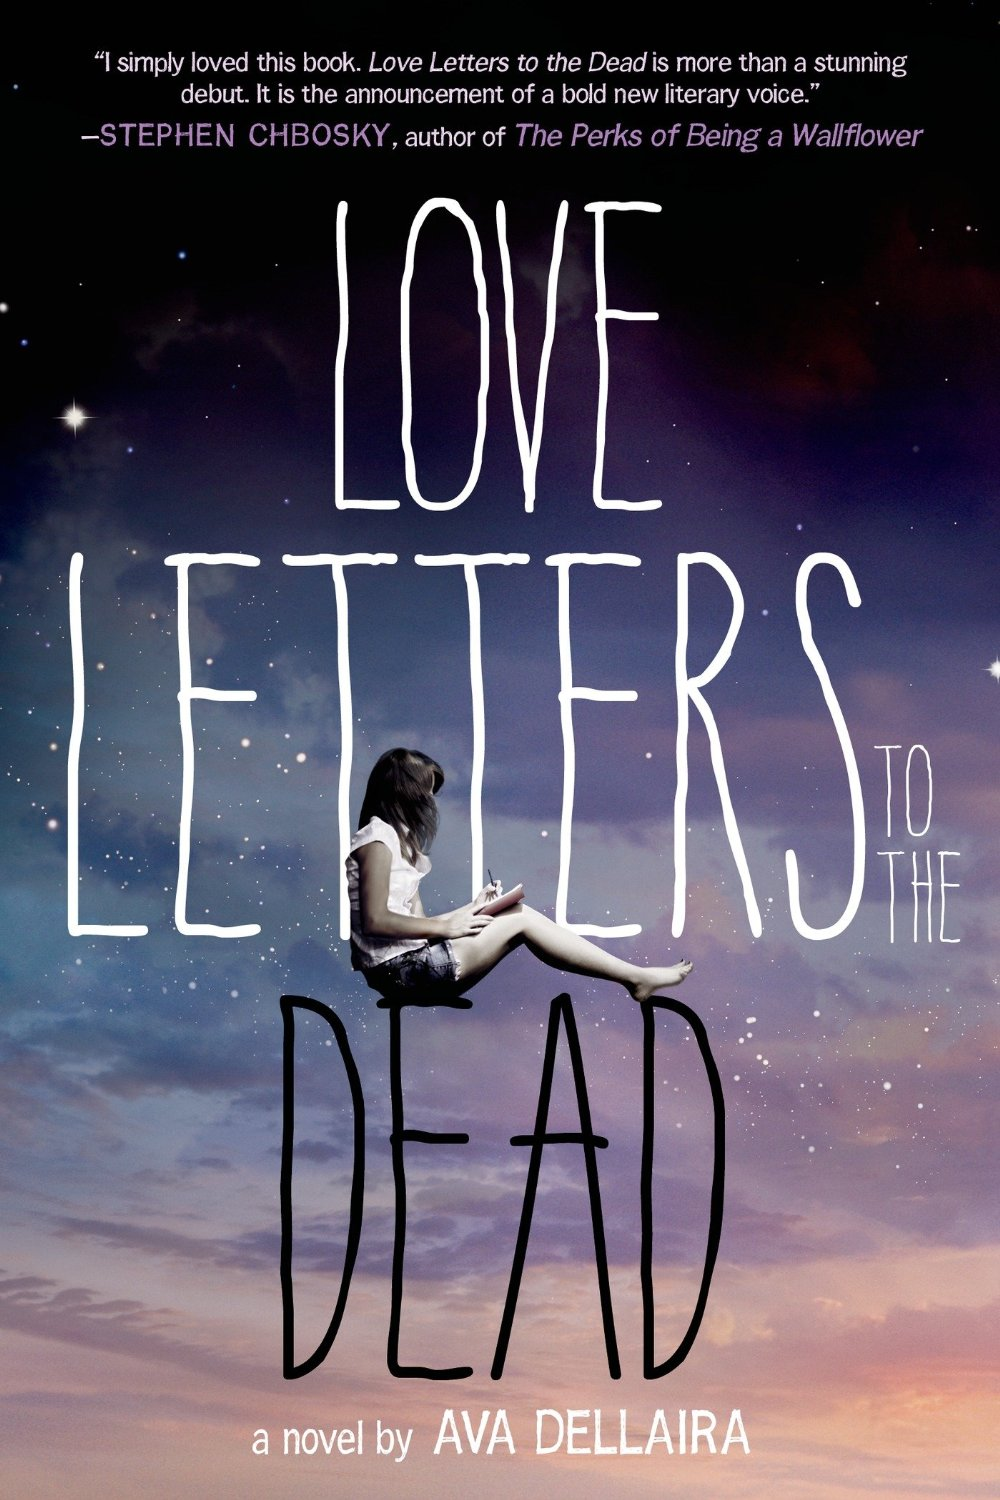 Love Letters to the Dead by Ava Dellaira Amazon | Goodreads